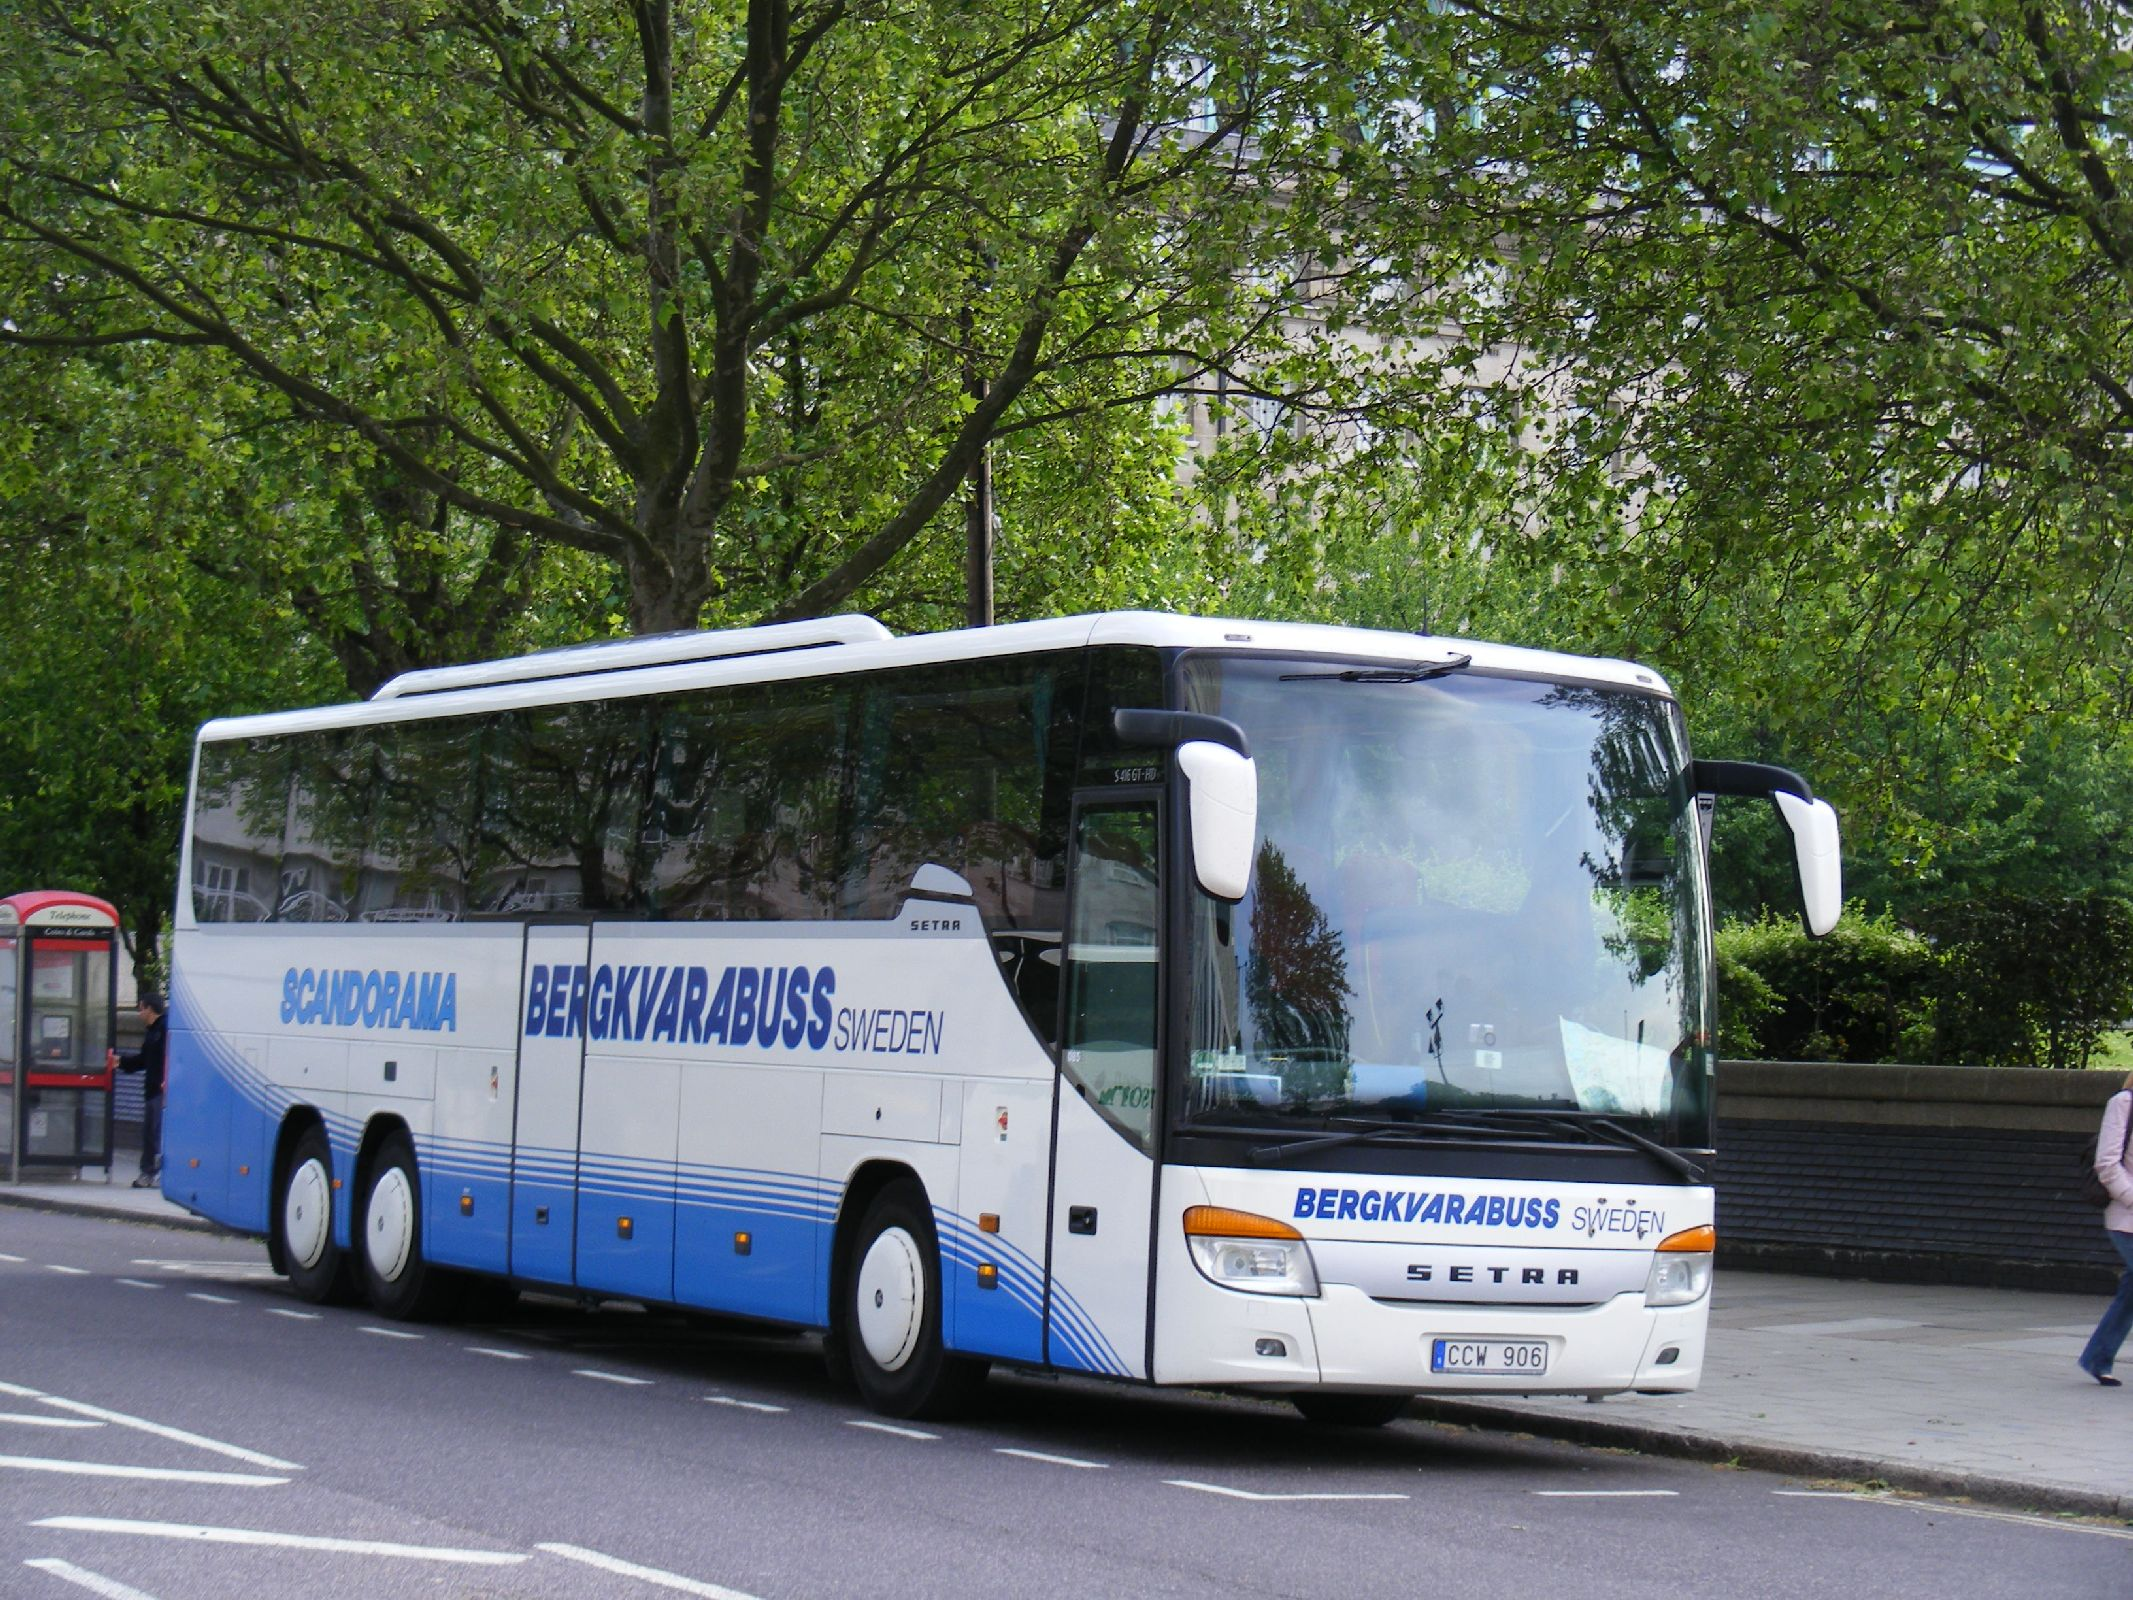 File:Bergkvarabuss, Setra S416 GT-HD, CCW906, Sweden. - Flickr ...